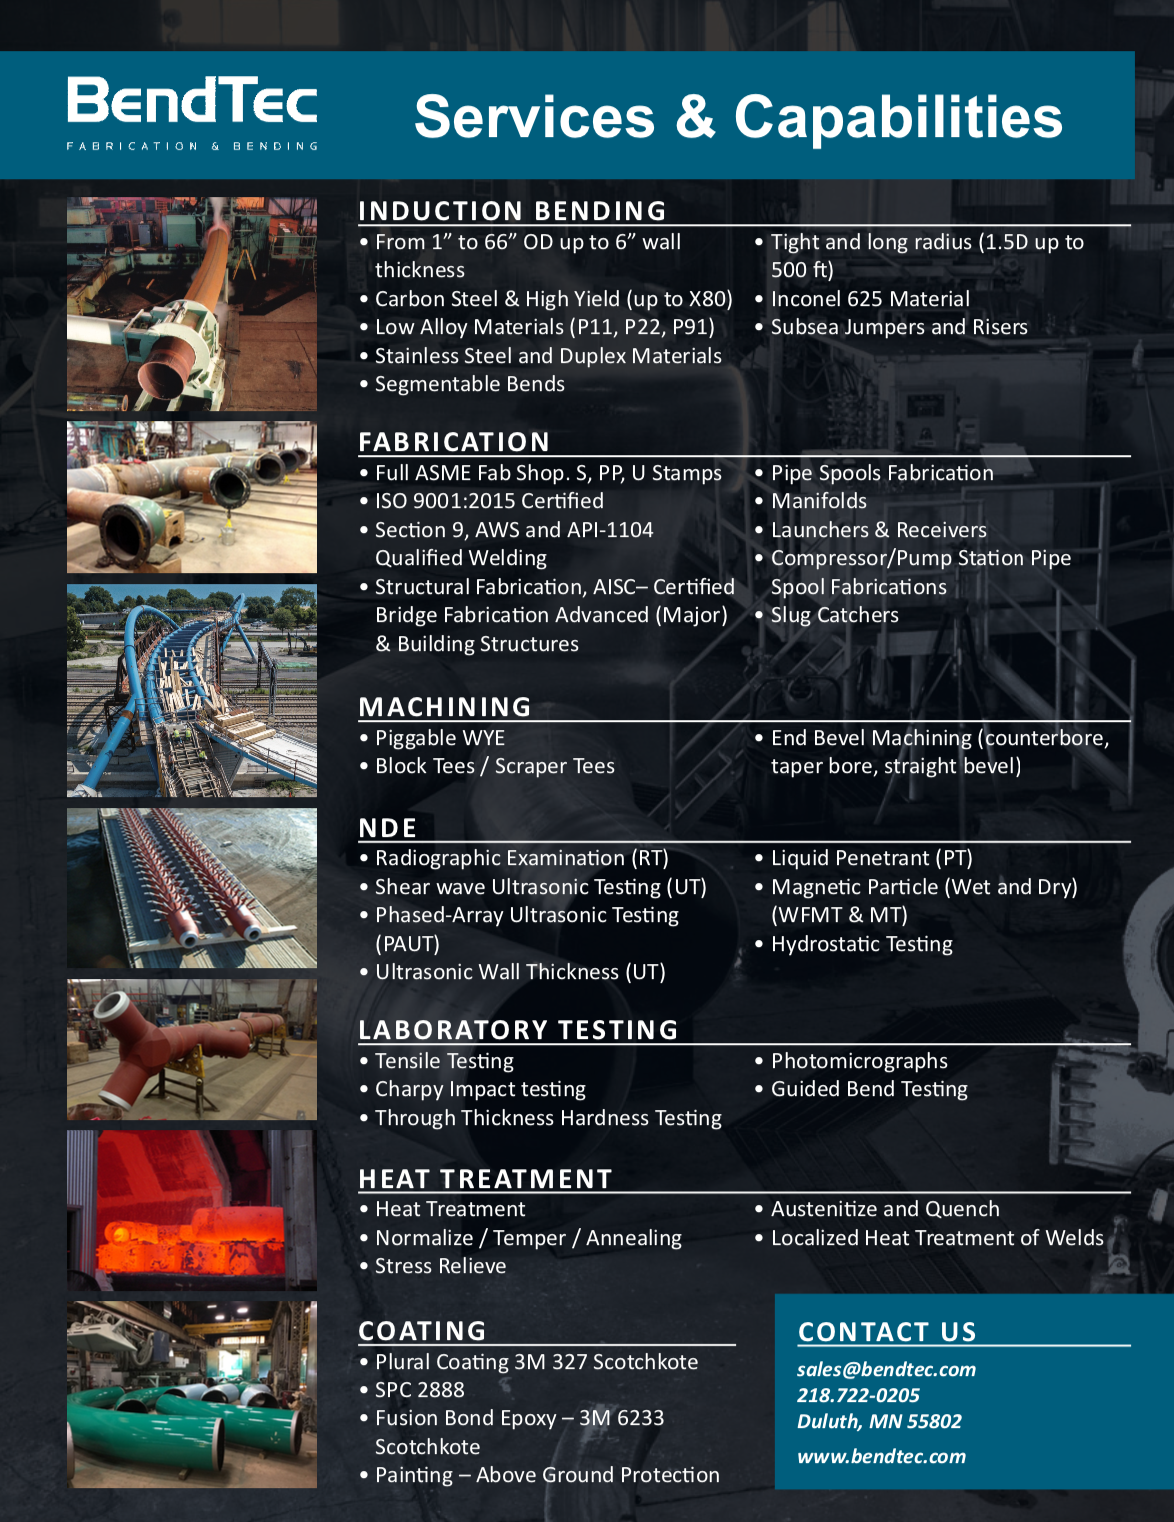 Bendtec Services and Capabilities: induction bending, fabrication, machining, NDE, Laboratory Testing, Heat Treatment and coating.